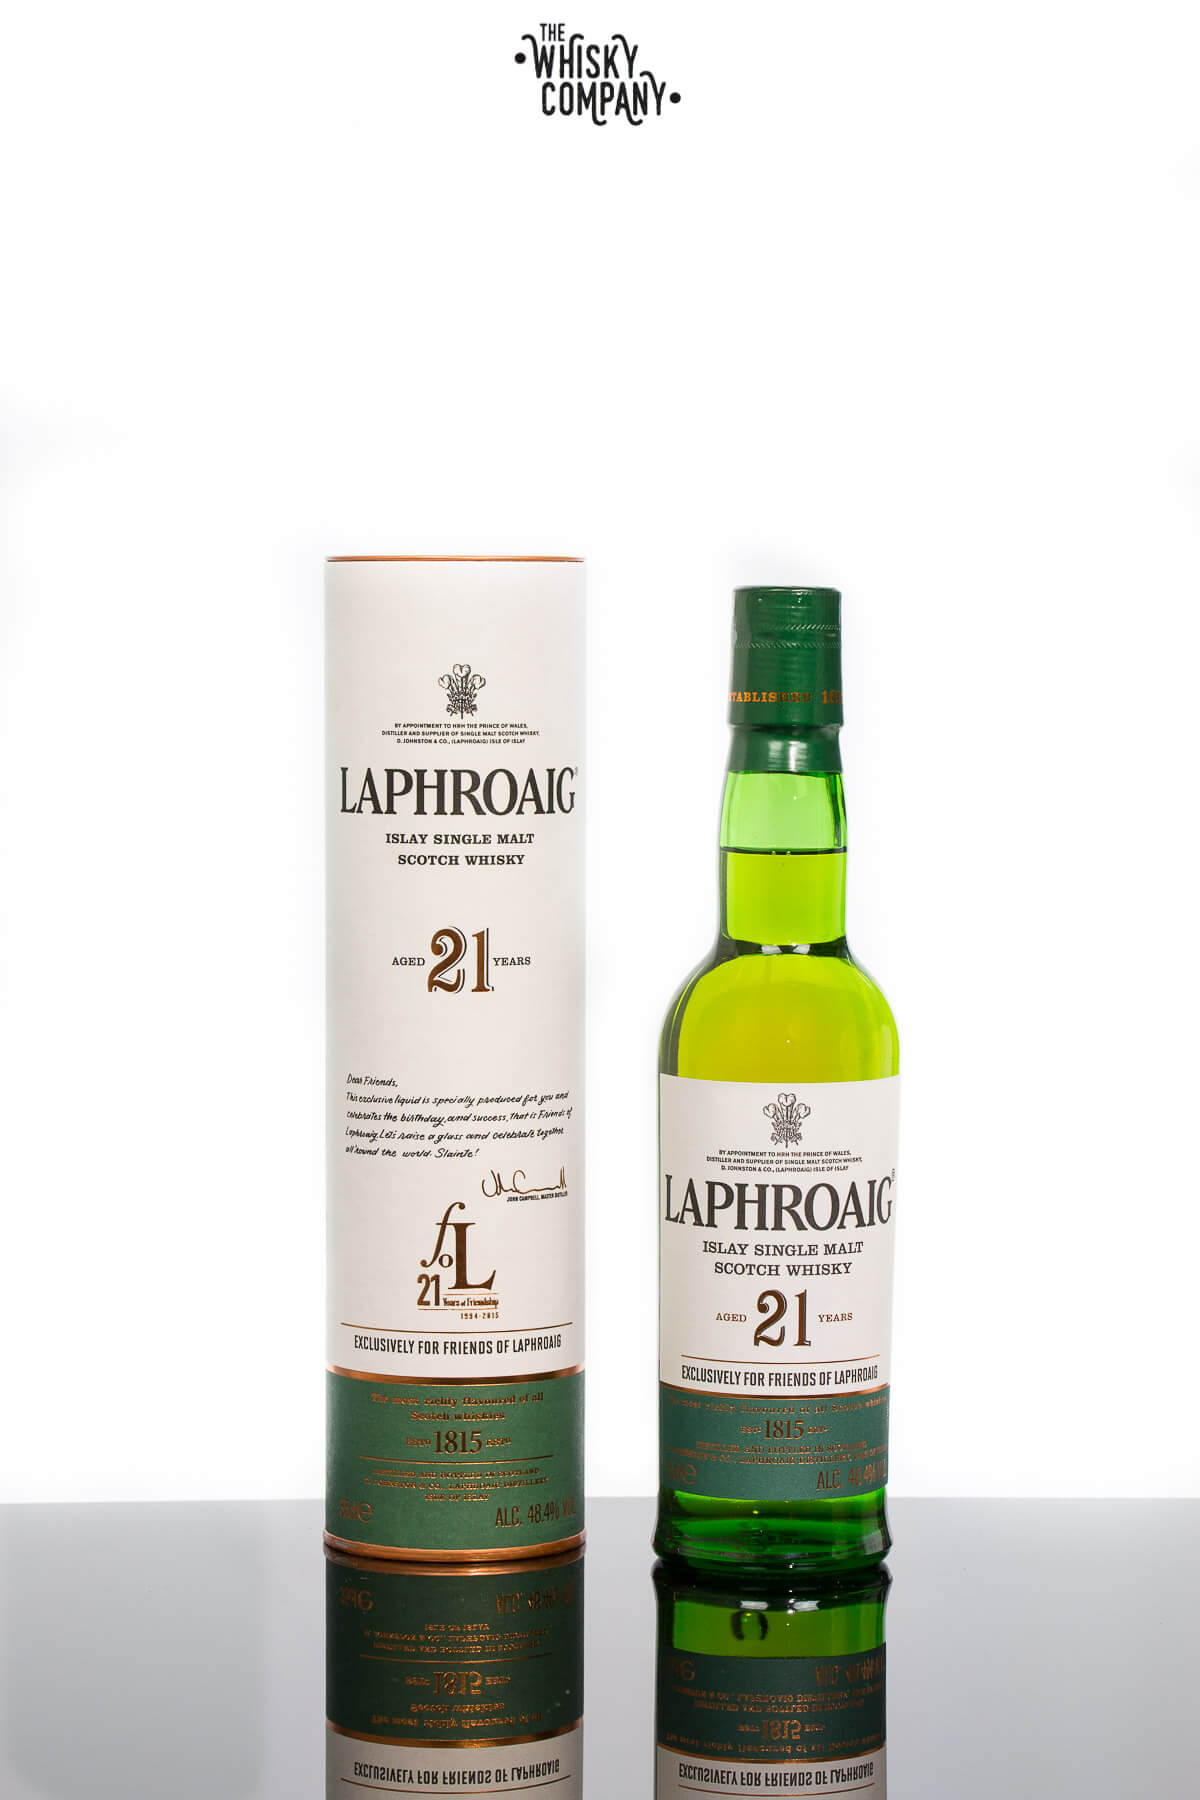 Laphroaig Aged 21 Years Friends of Laphroaig Release Islay Single Malt Scotch Whisky